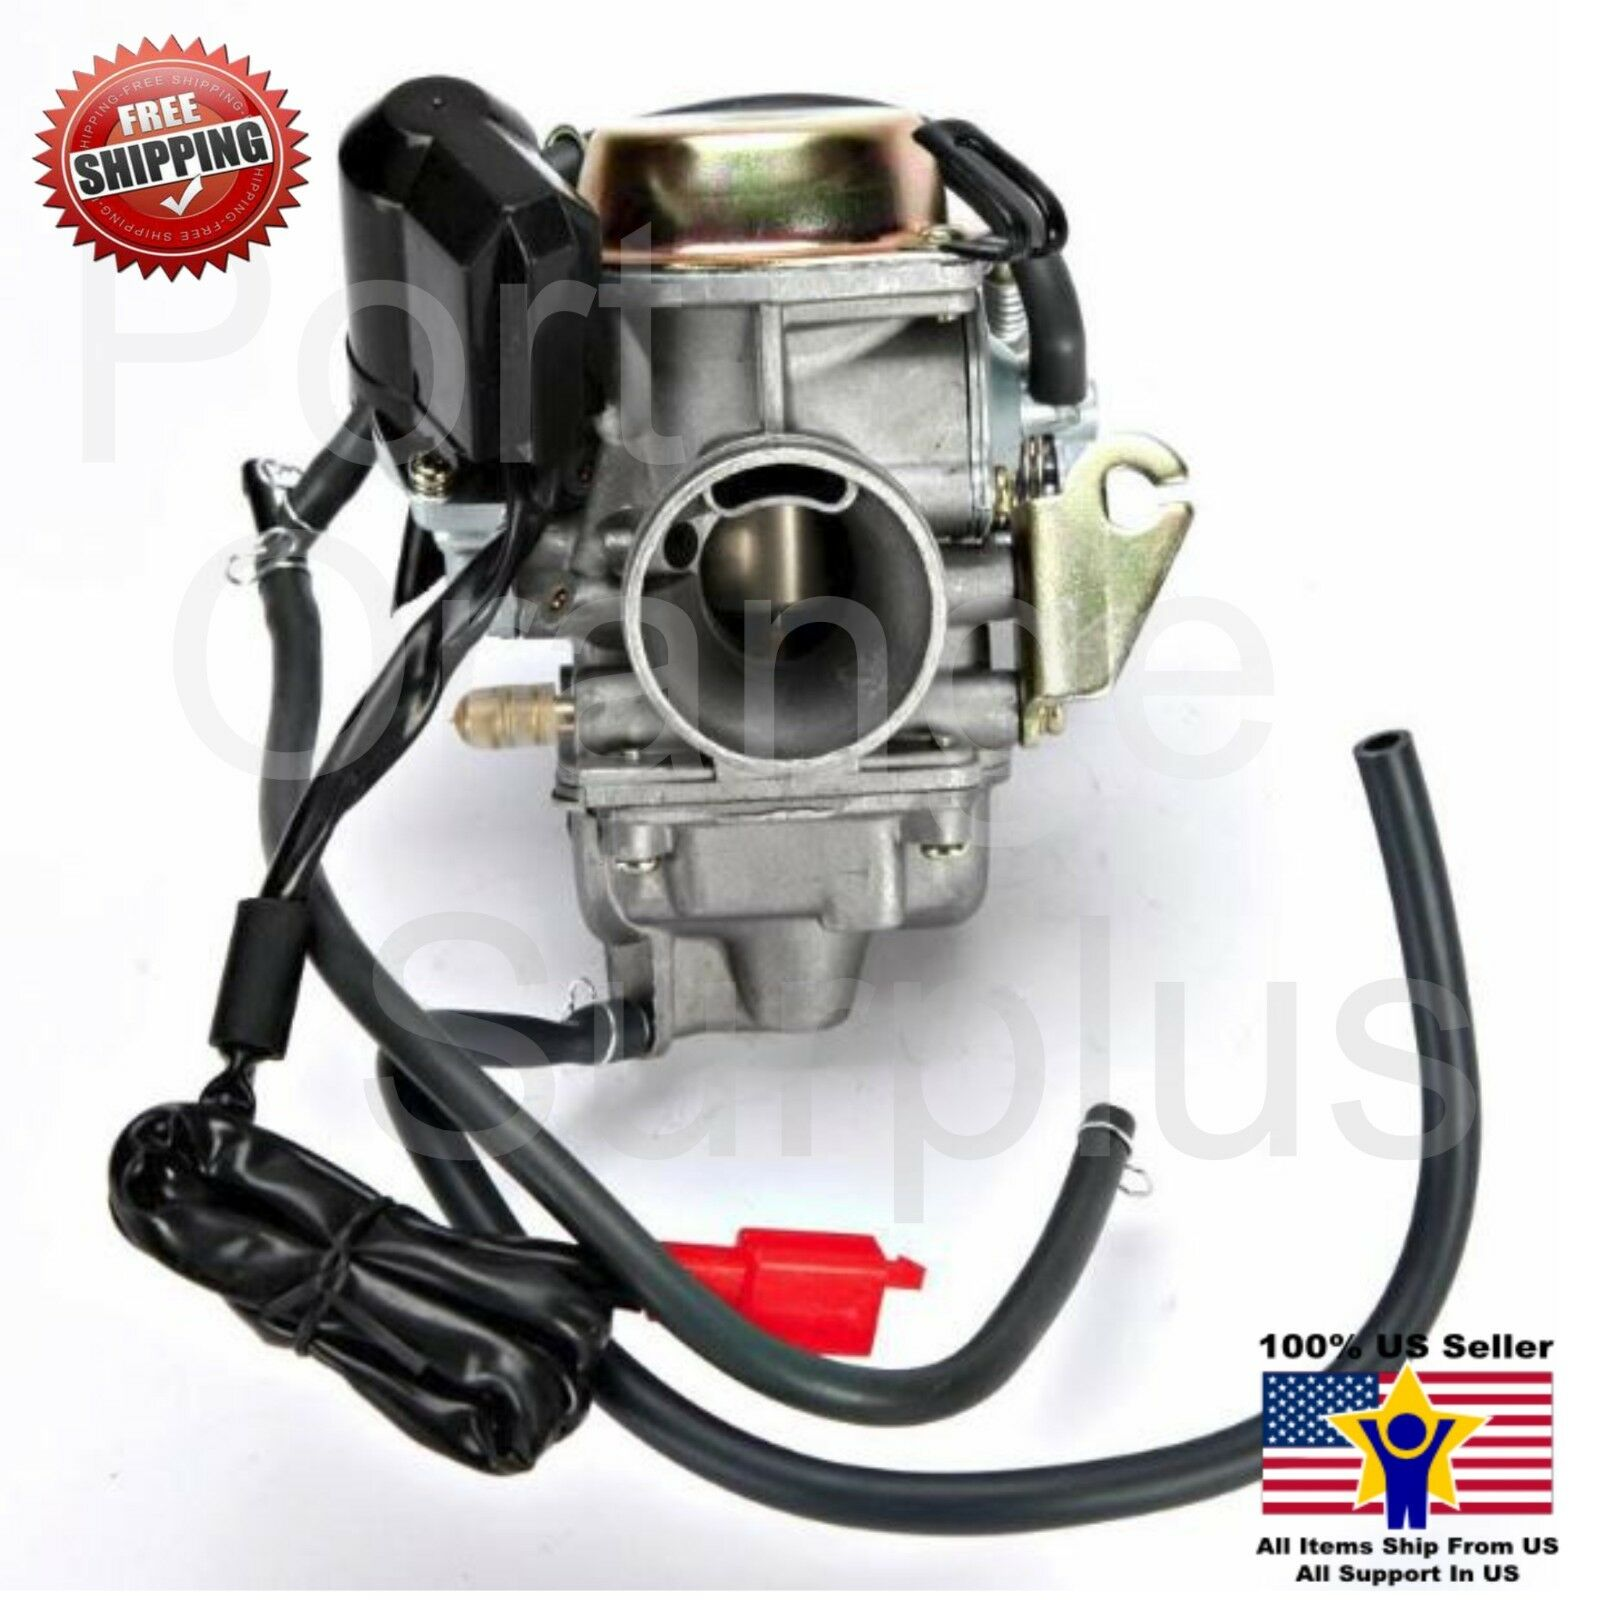 hight resolution of details about new performance carburetor for tomberlin crossfire 150 r 150cc go kart